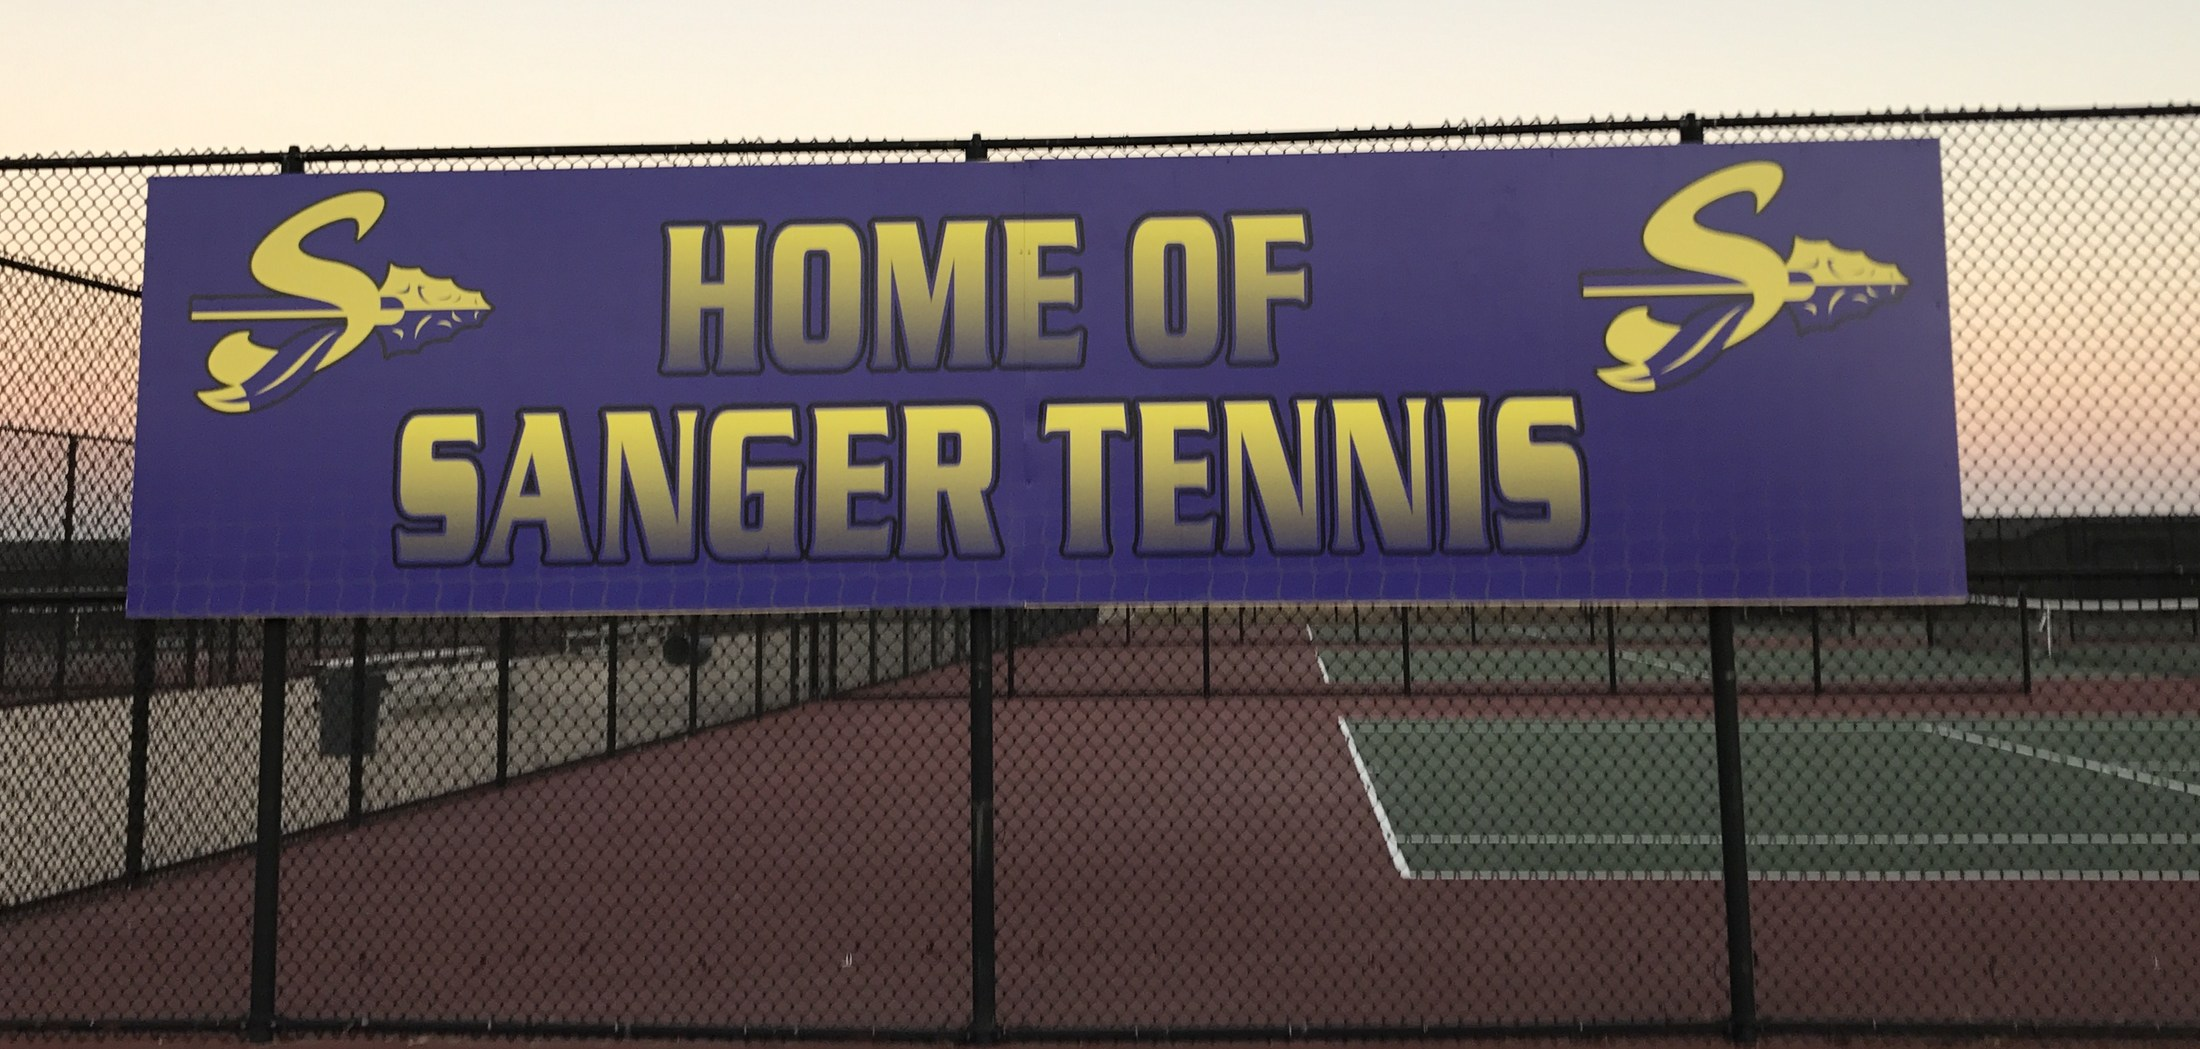 Home of Sanger Tennis